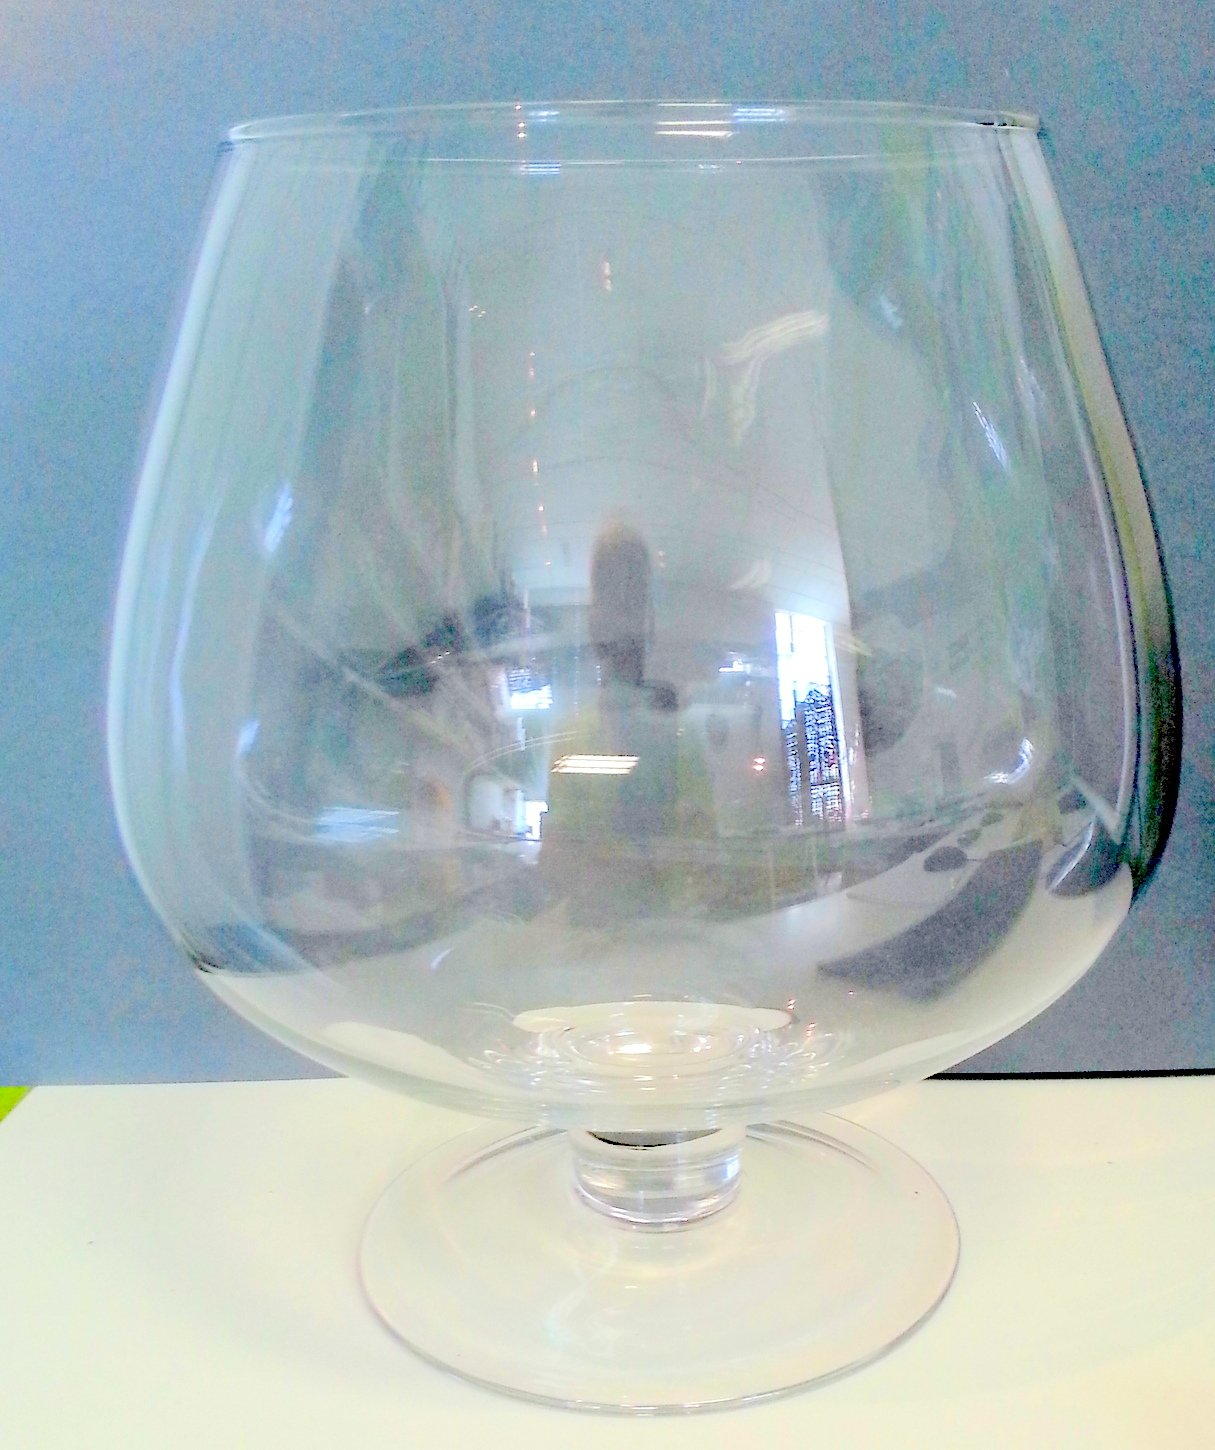 Giant Snifter Large Cognac Glass Decoratable , XXXL Snifter Table Decoration Volume 11-12 Litres, Height Approx. 37 Cm, big opening ca. 17 cm, Oberstdorfer Glashuette